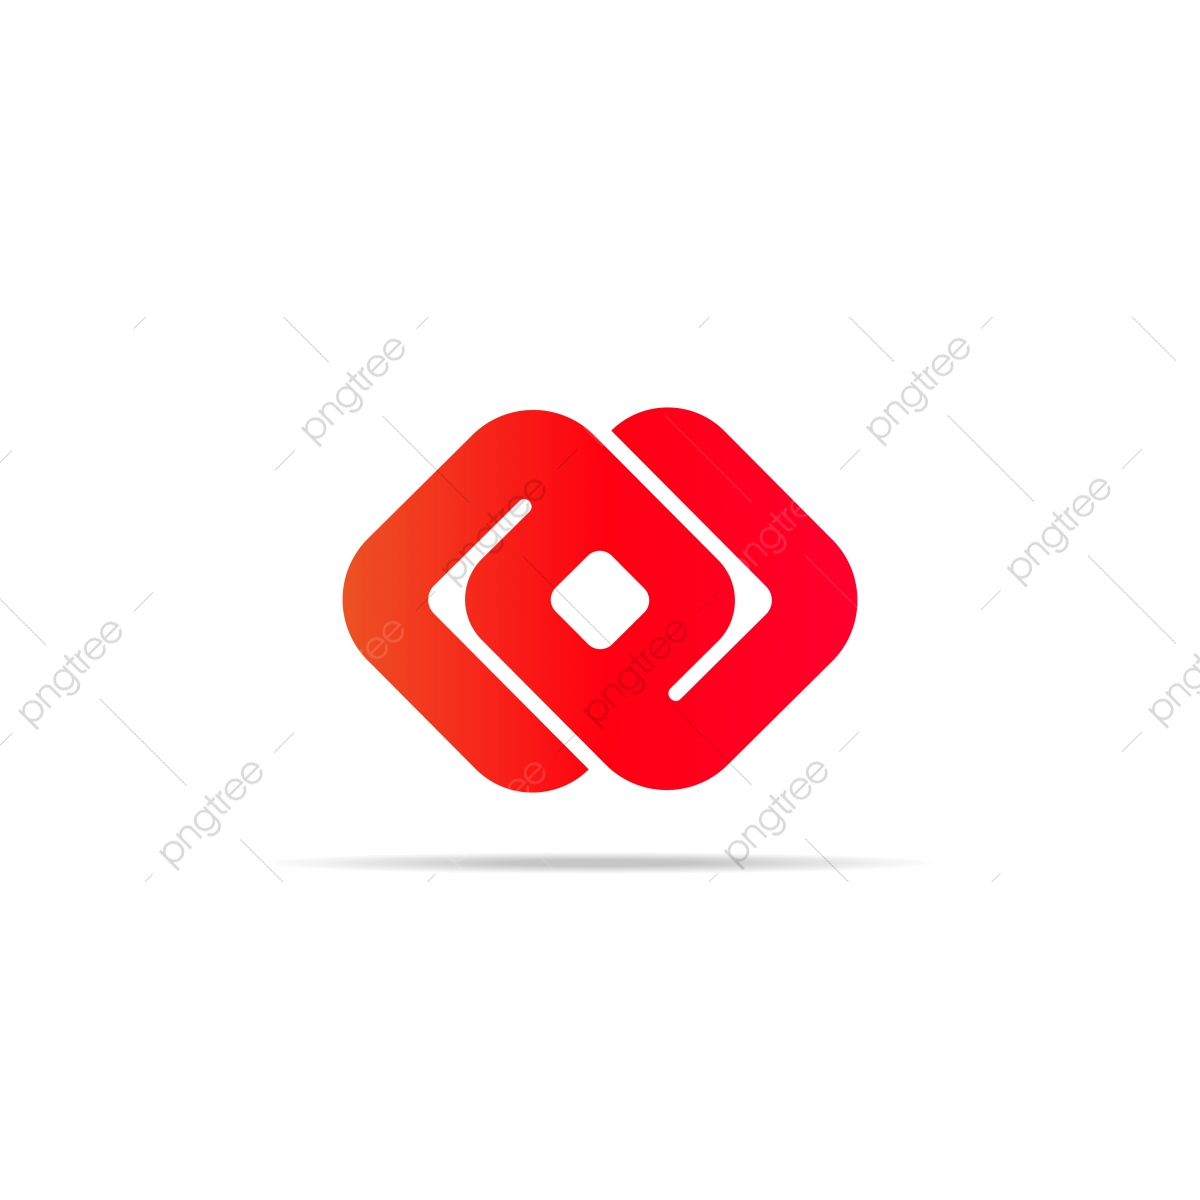 Abstract Infinity Chain Cube Logo Element Concept With